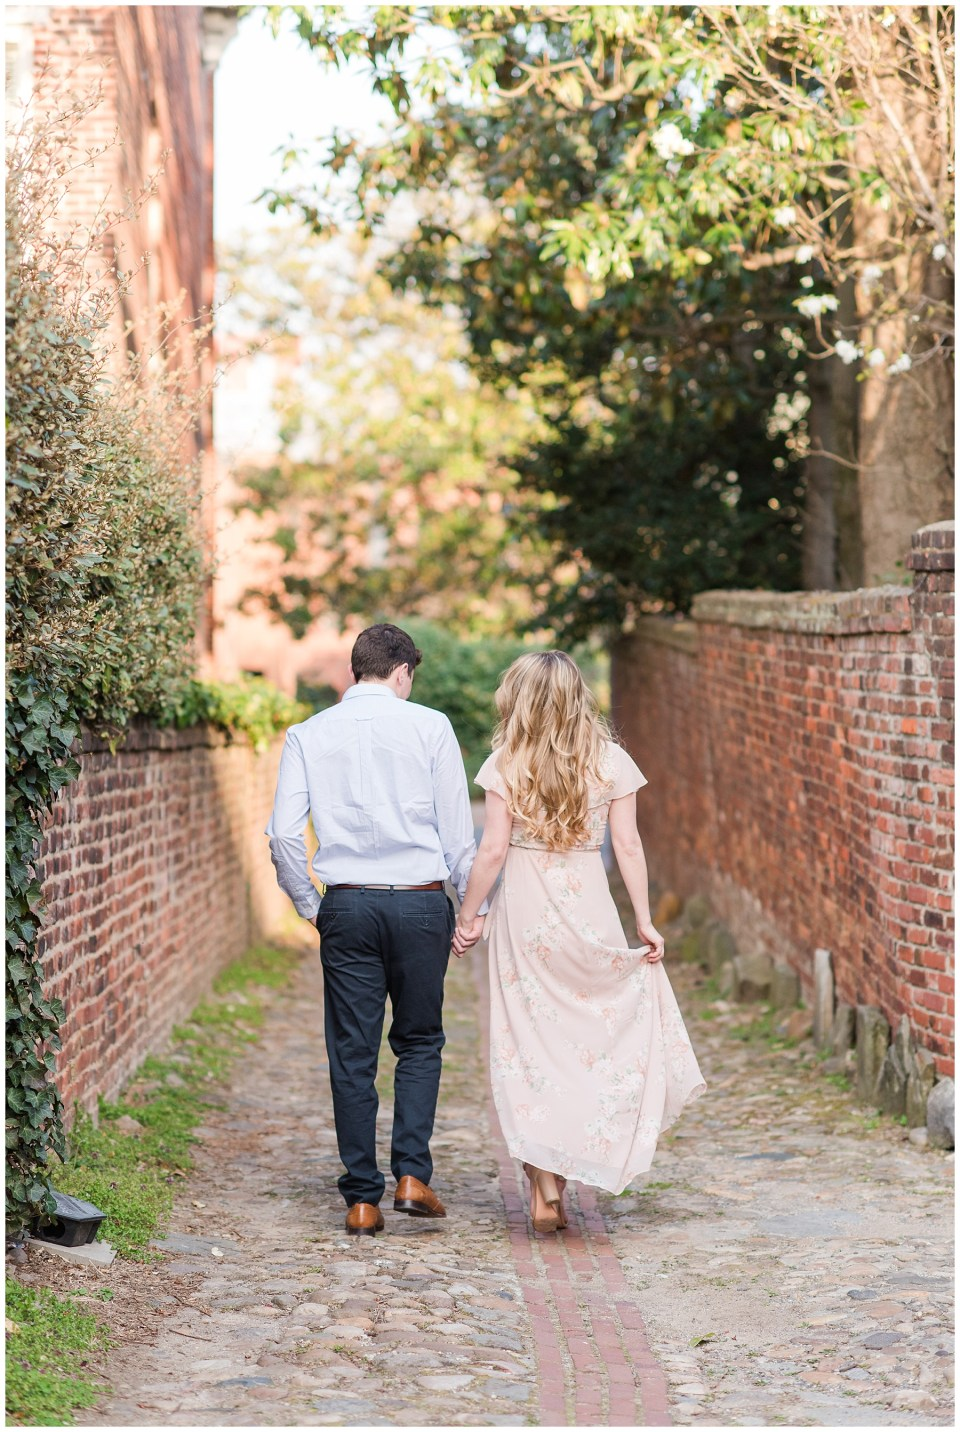 old-town-alexandria-wedding-photographer-sunset-cobblestone-road-waterfront-engagement-photo-17_photos.jpg